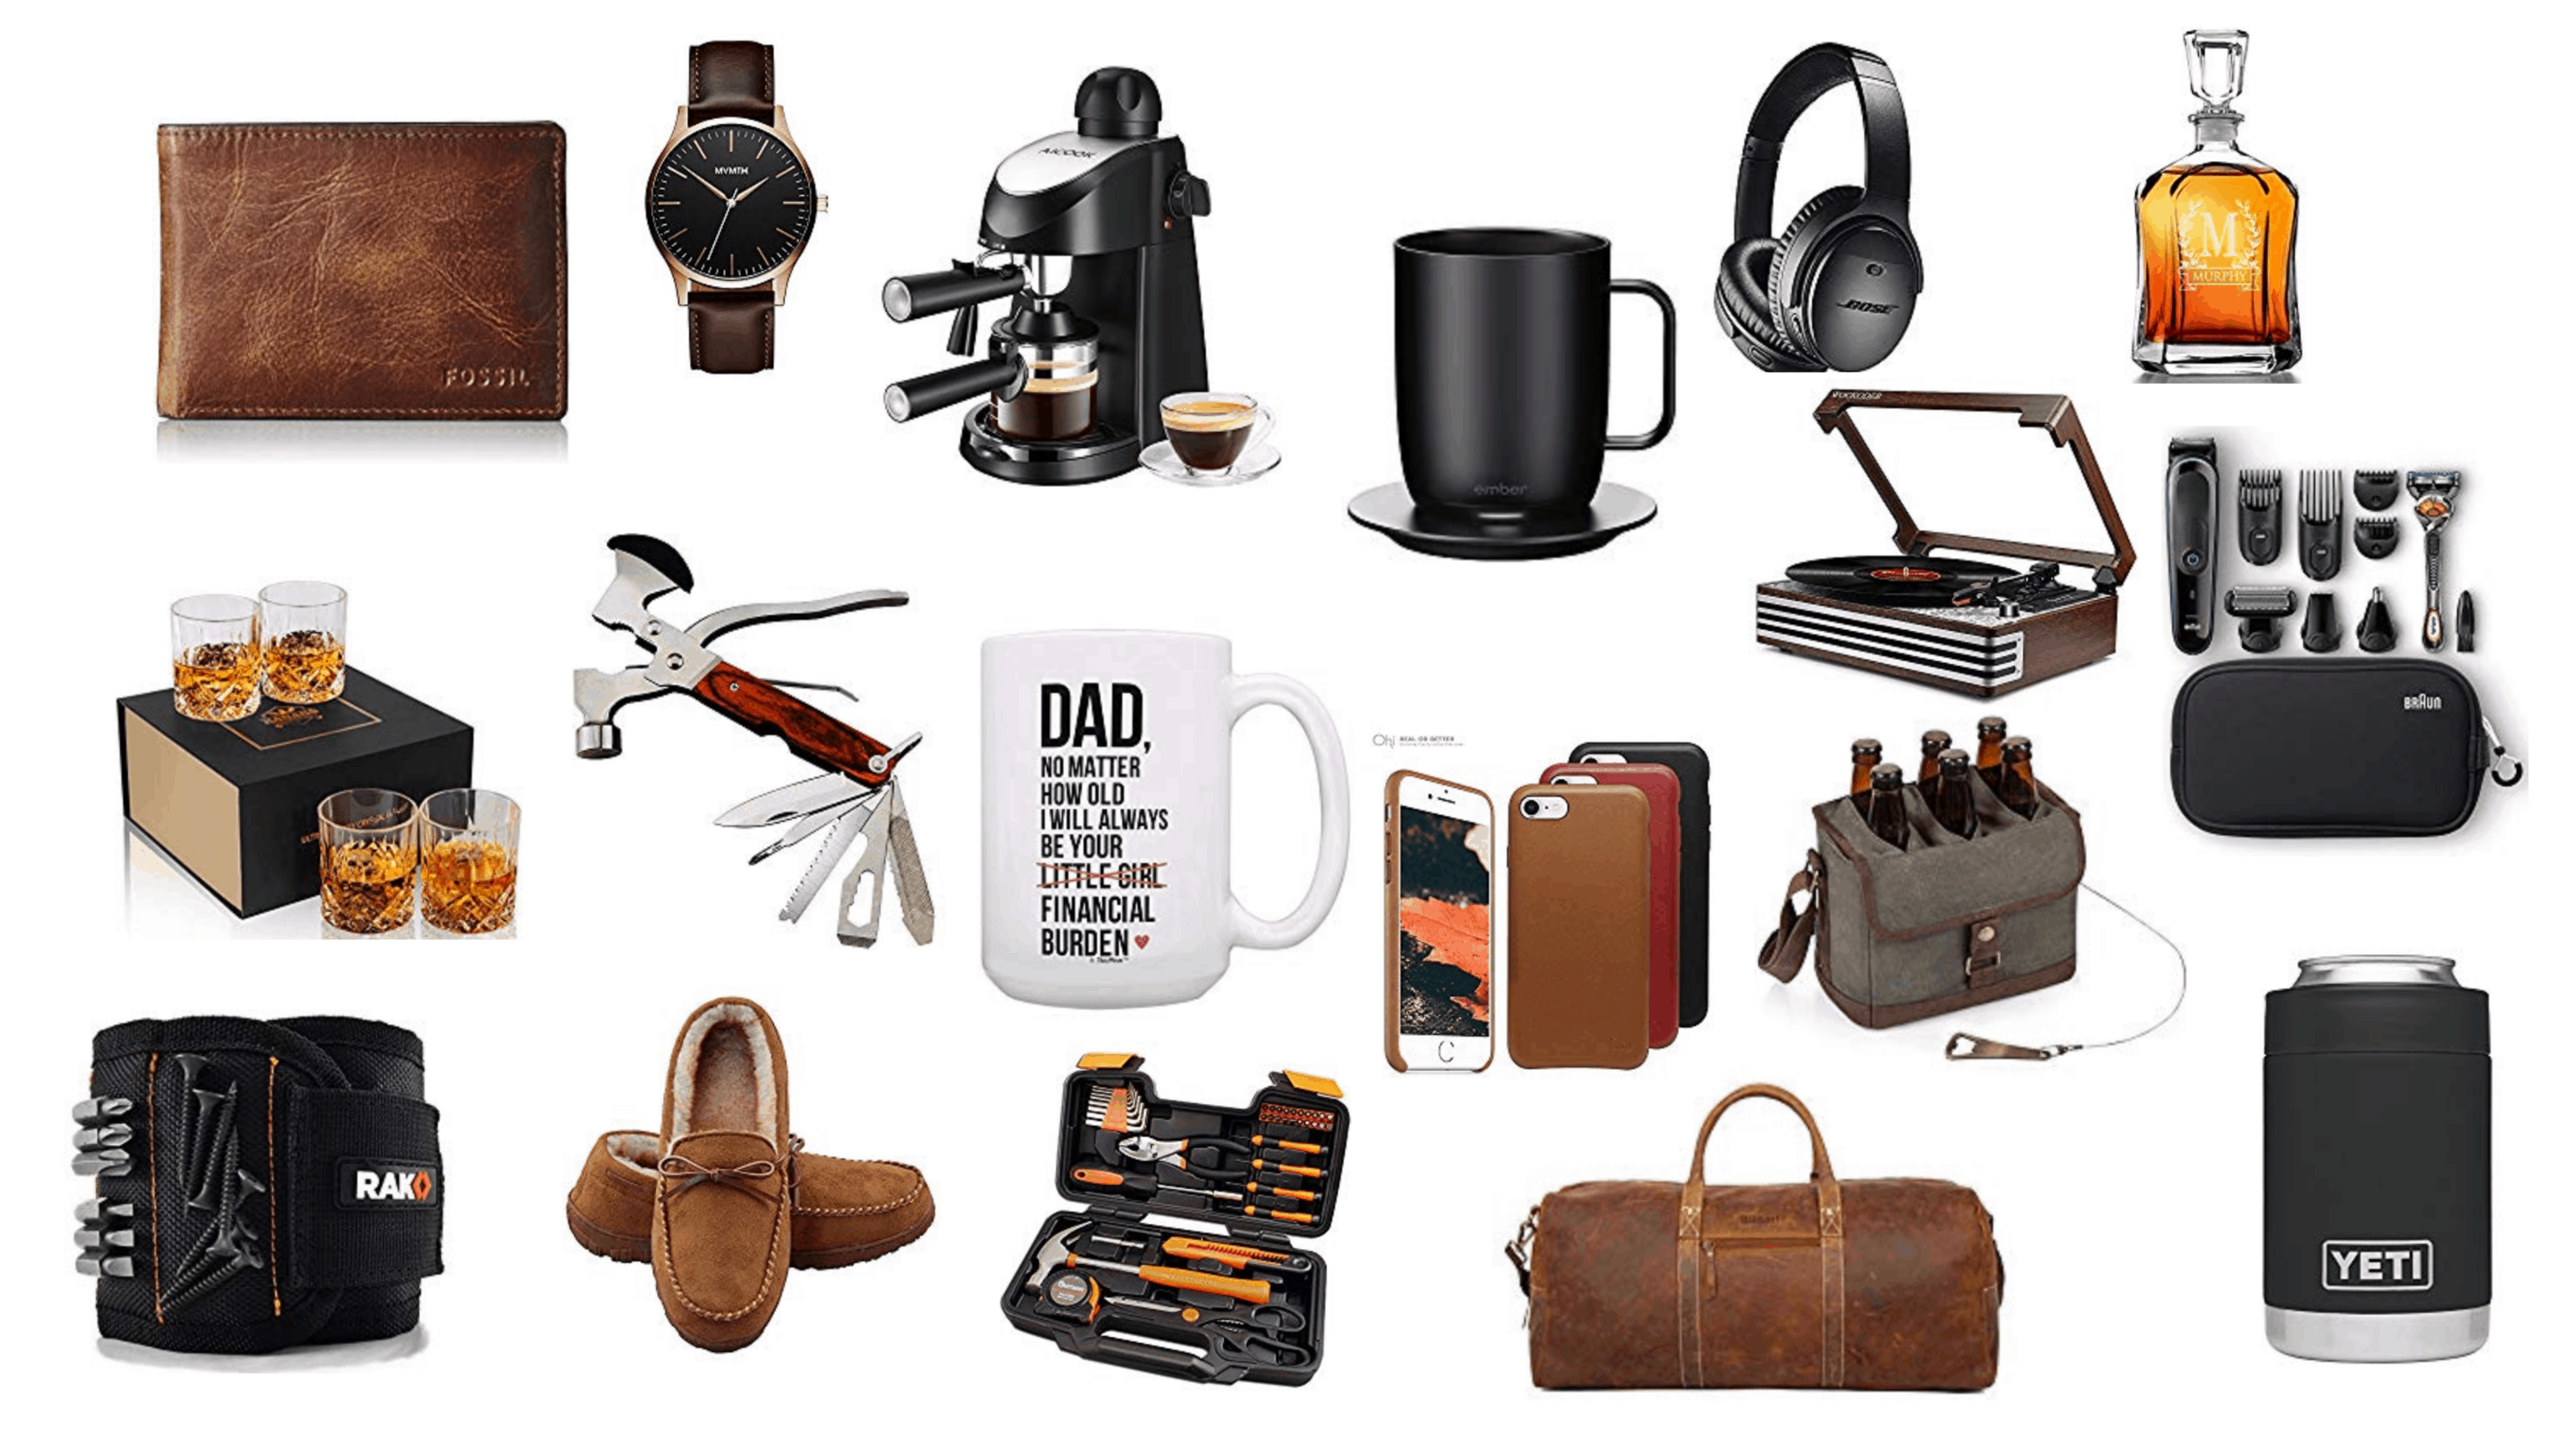 45 Christmas Gifts For Dad He Will Obsess Over By Sophia Lee